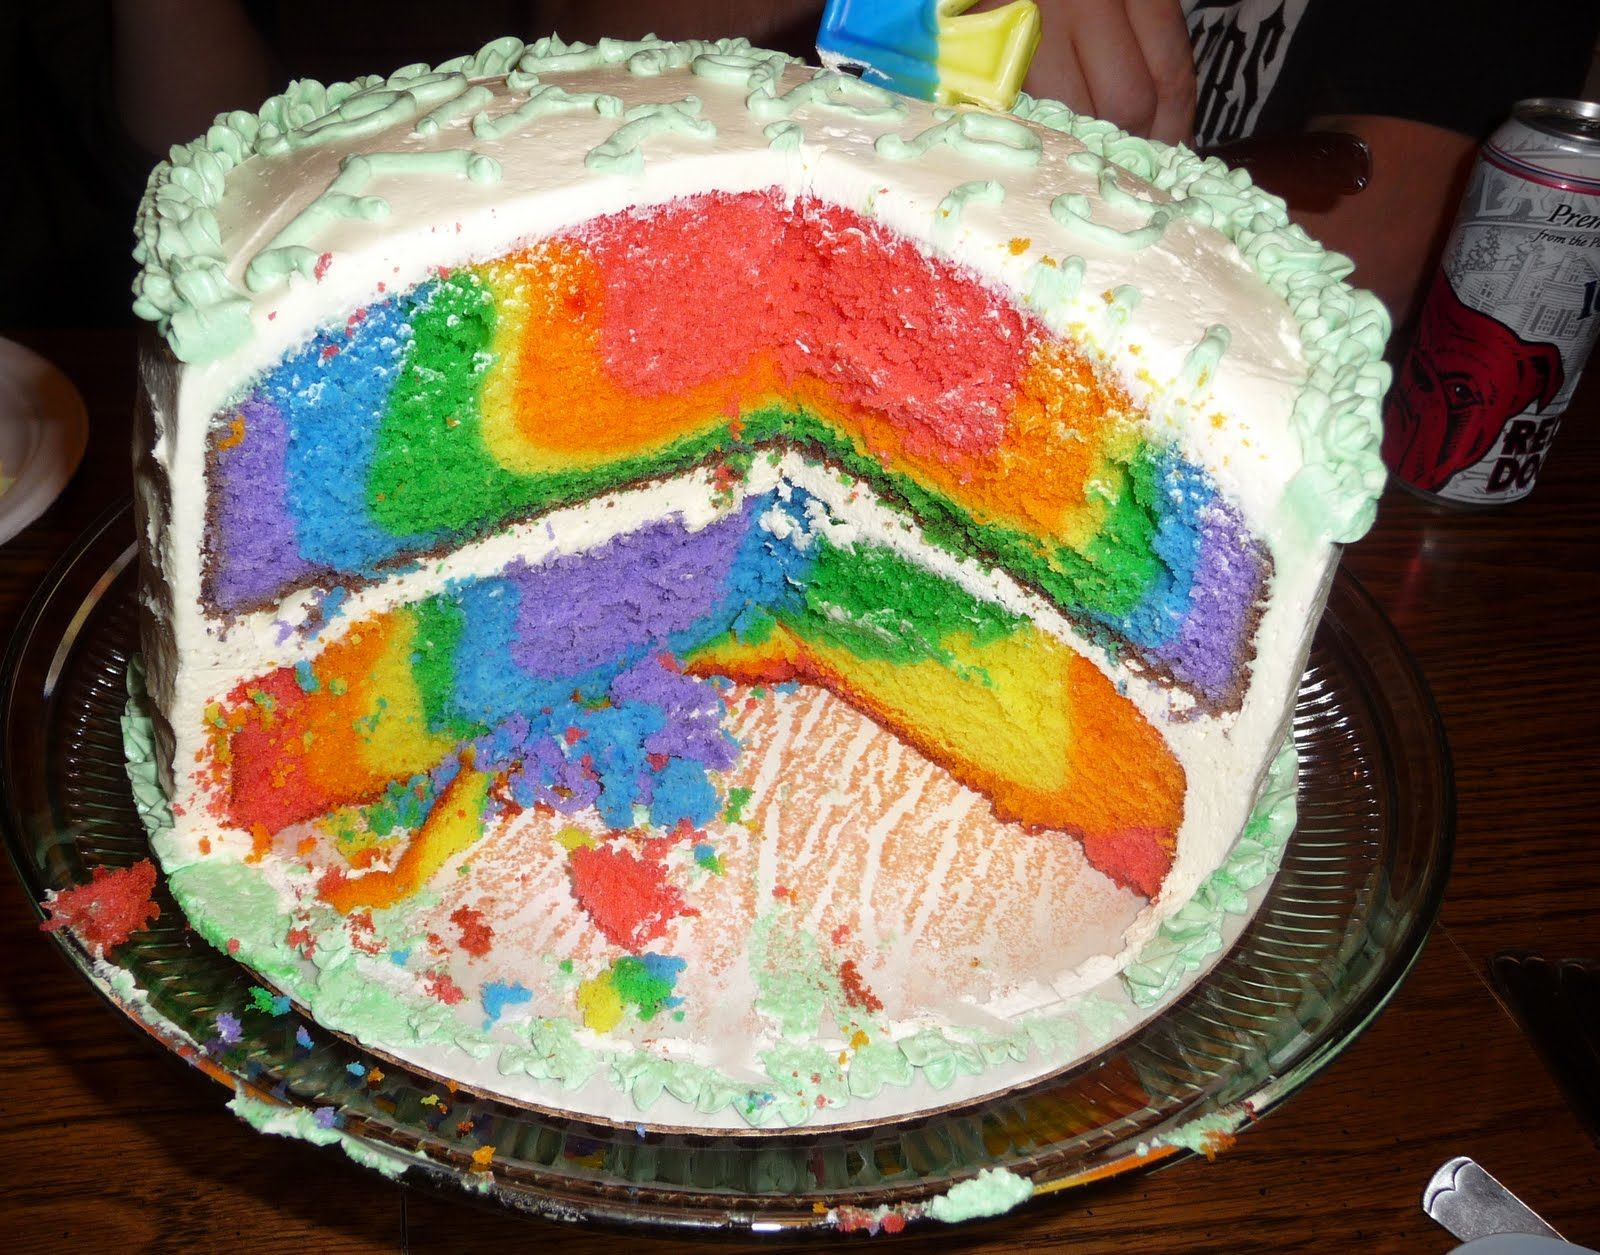 Rainbow Cake | Rainbow Cake Recipe | Rainbow Cake Tutorial 2012 - The ...